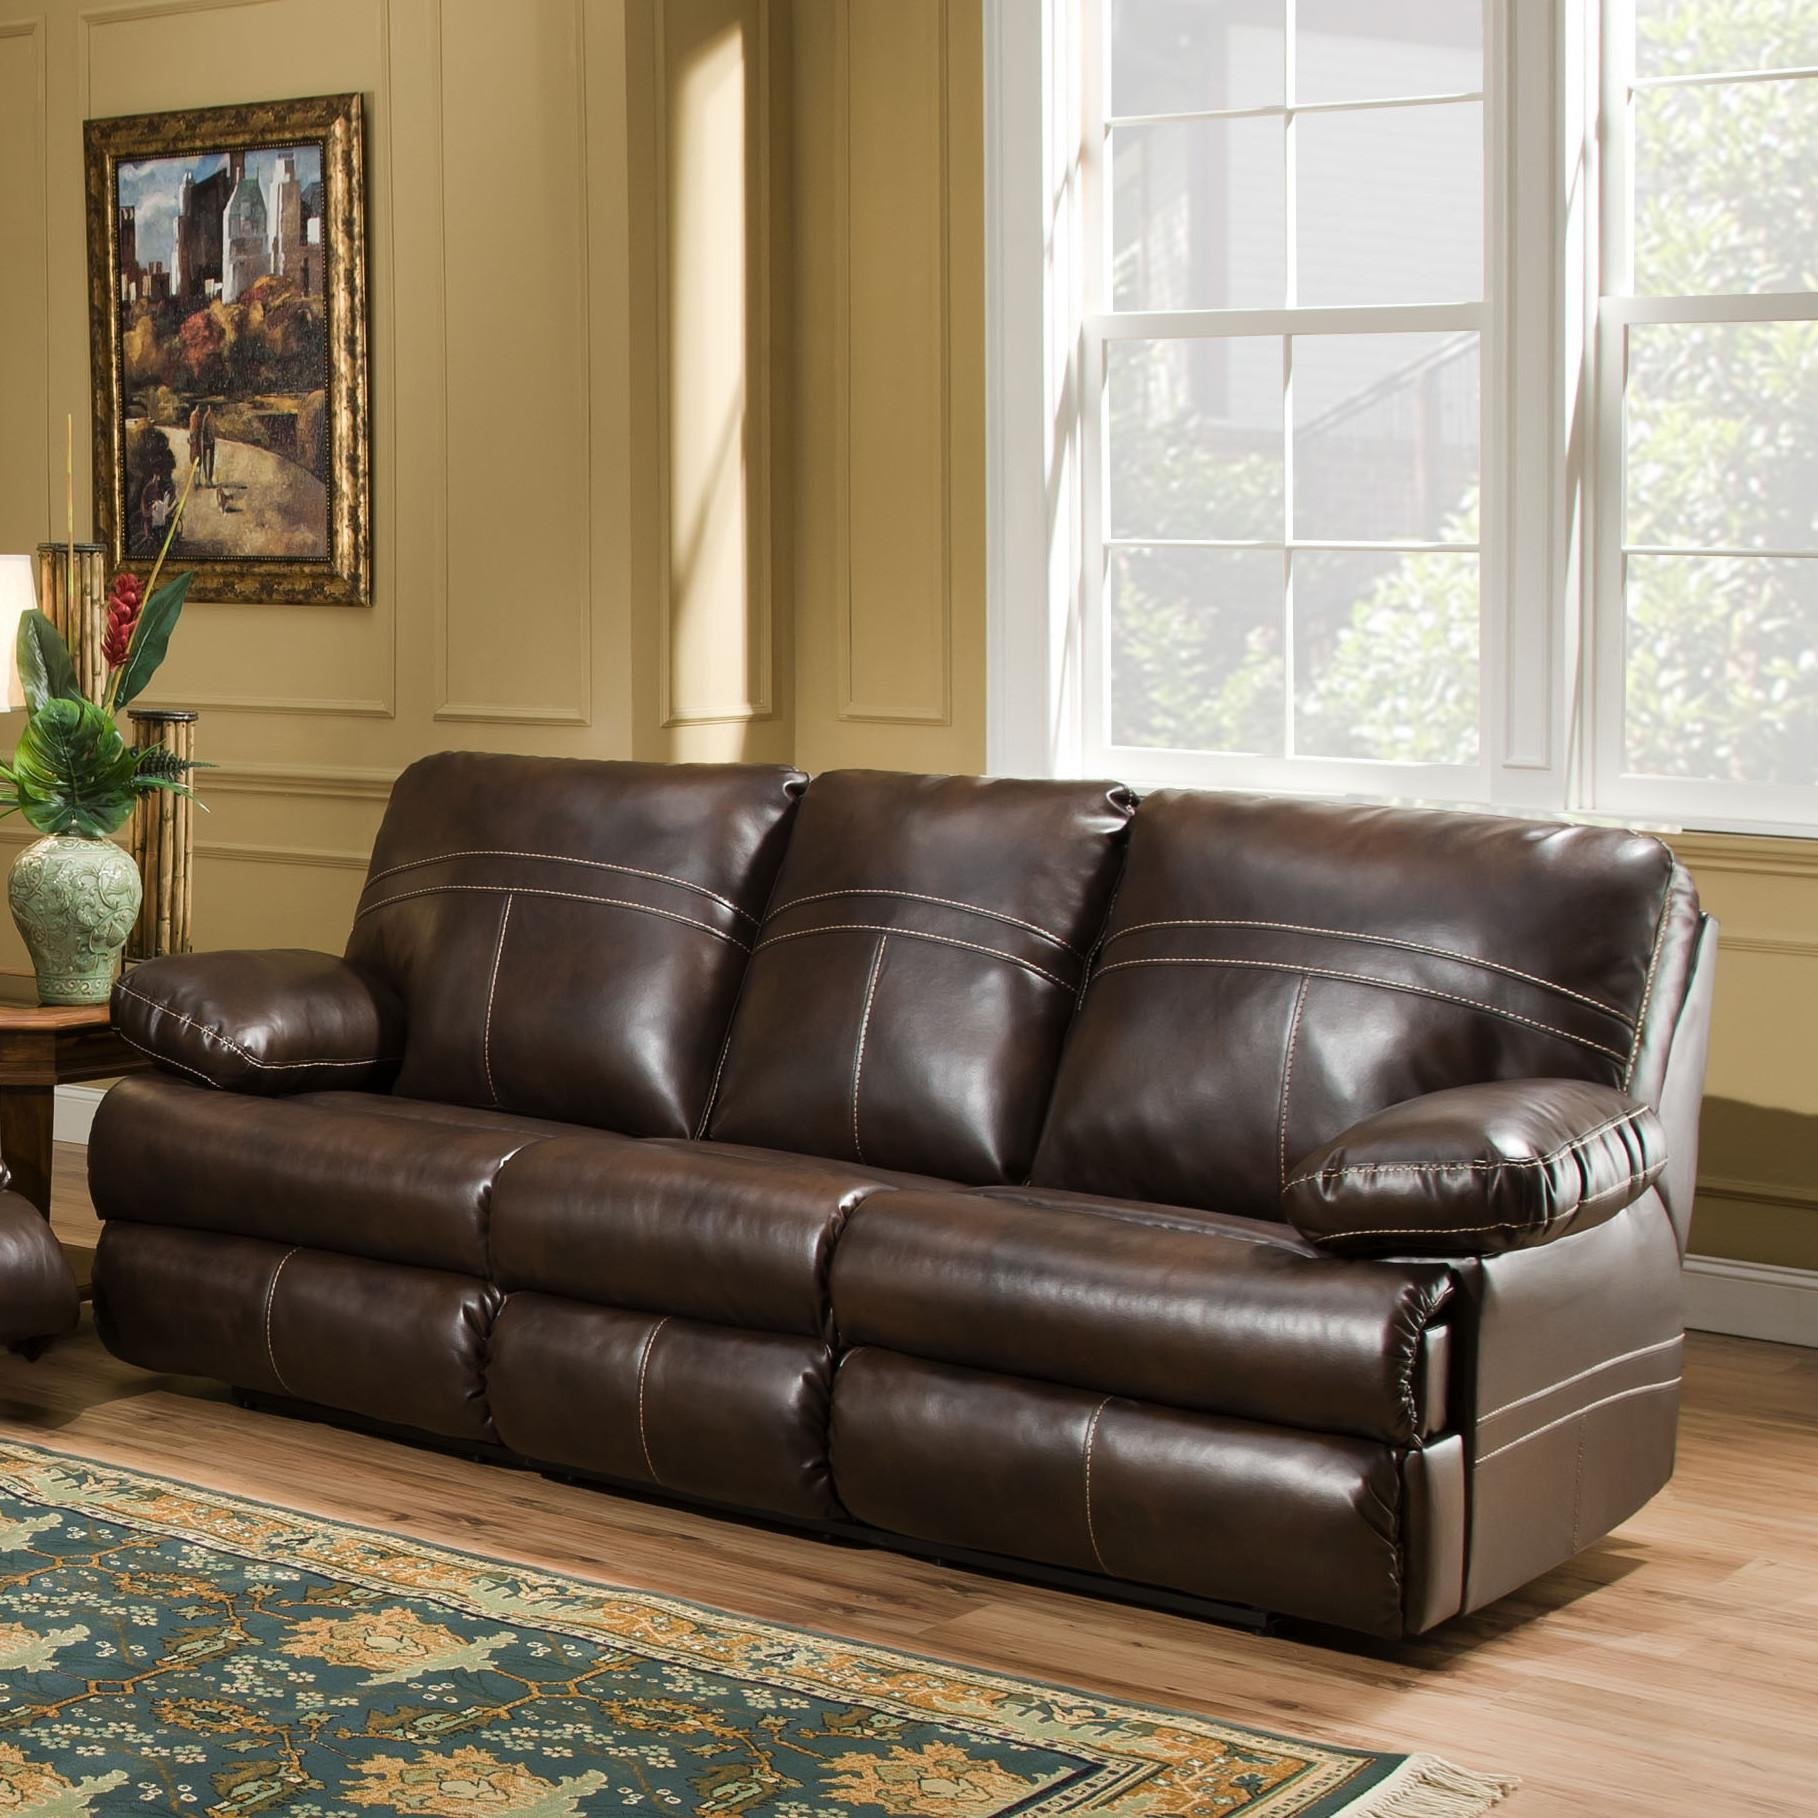 Furniture: Simmons Sectional For Comfortable Seating — Threestems Intended For Simmons Leather Sofas (Image 2 of 20)